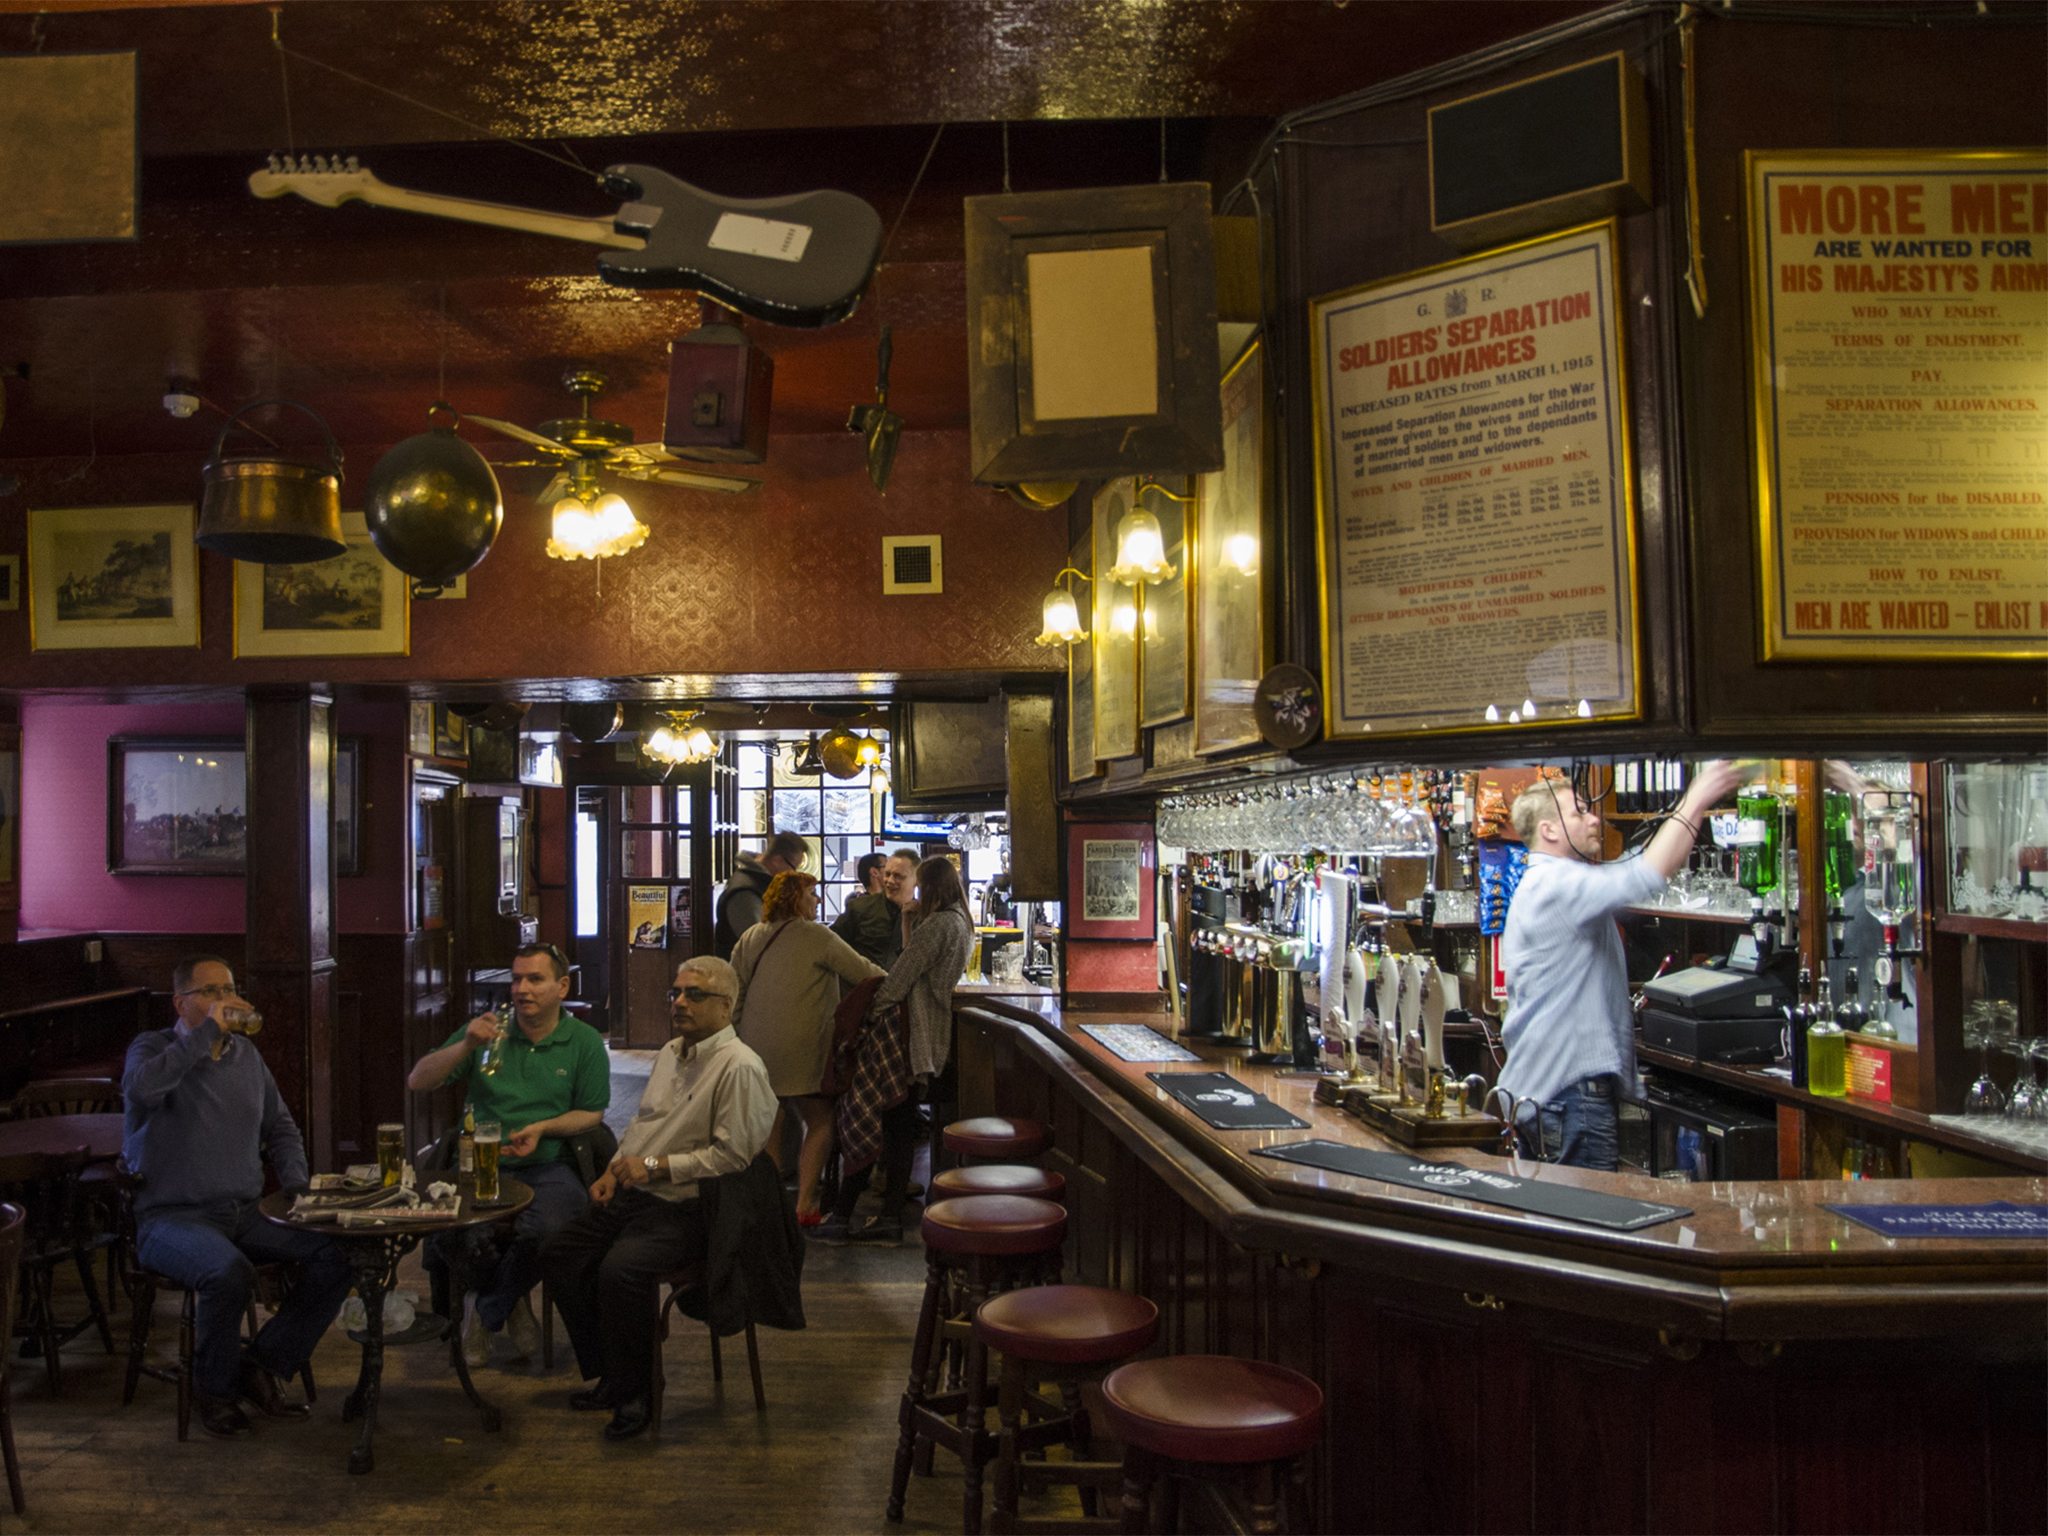 The 100 best bars and pubs in London - Old Coffee House, Soho